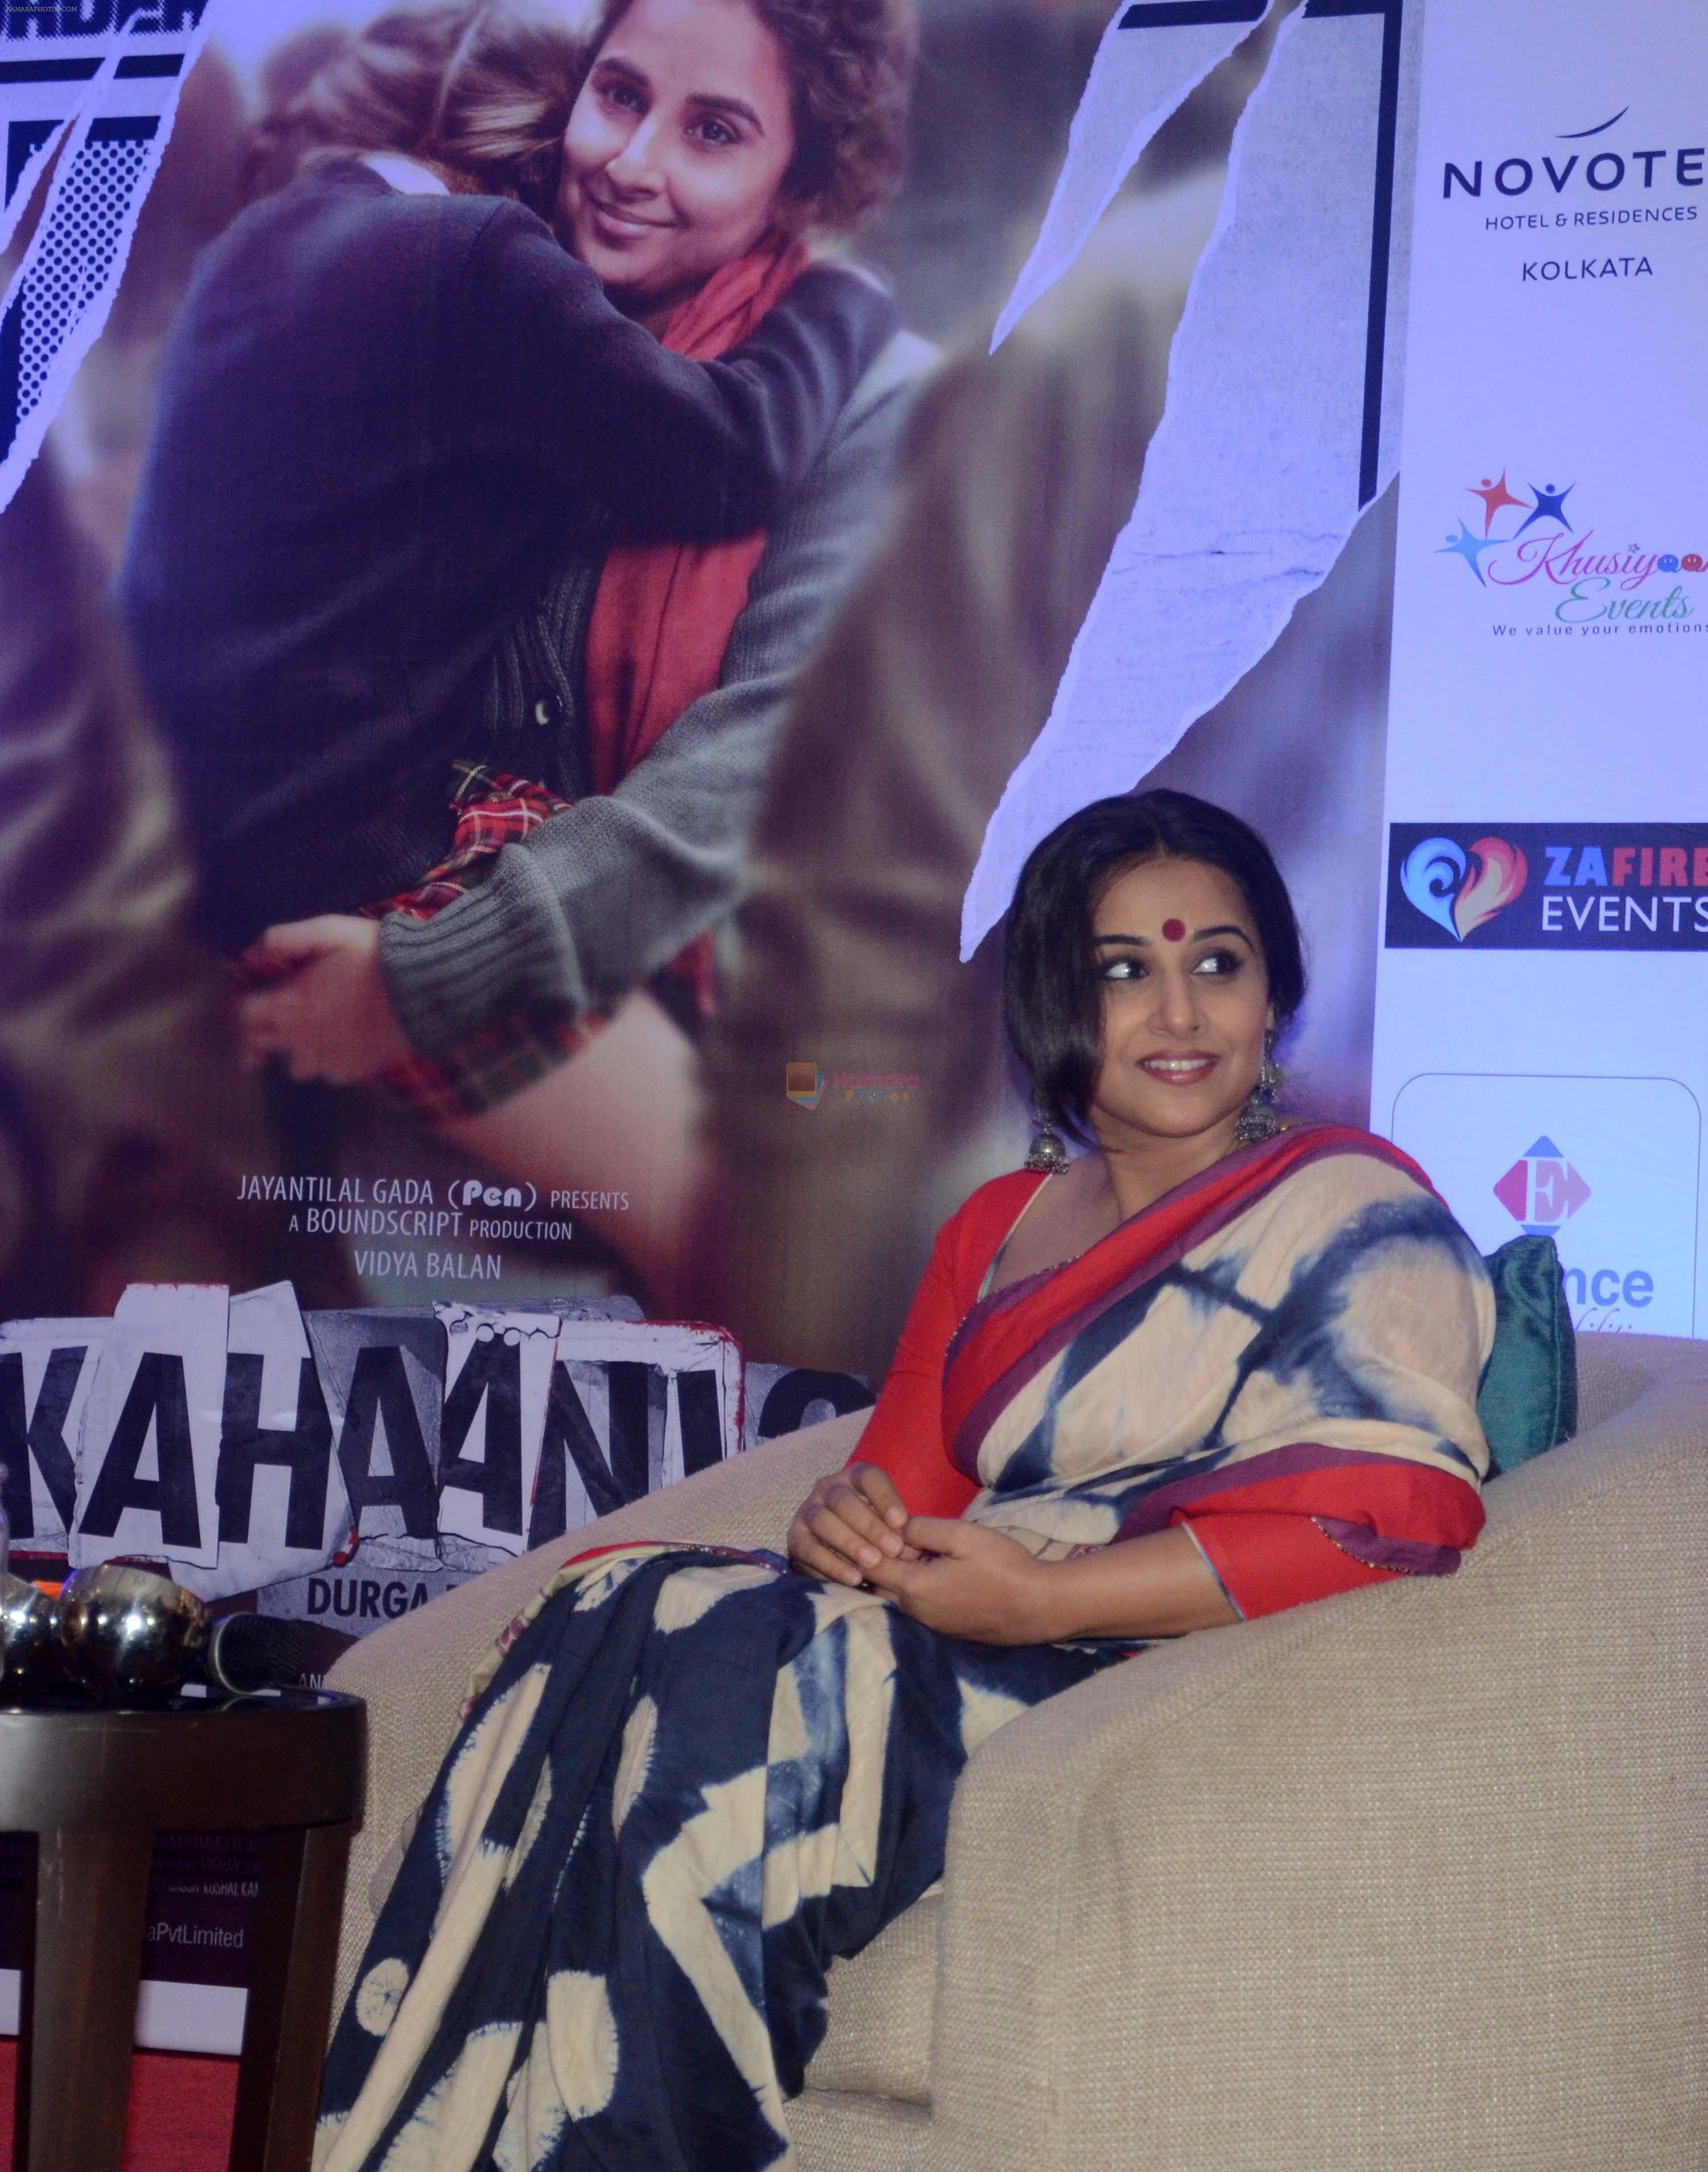 Vidya Balan in Hyderabad for Kahaani 2 promotions on 23rd Nov 2016